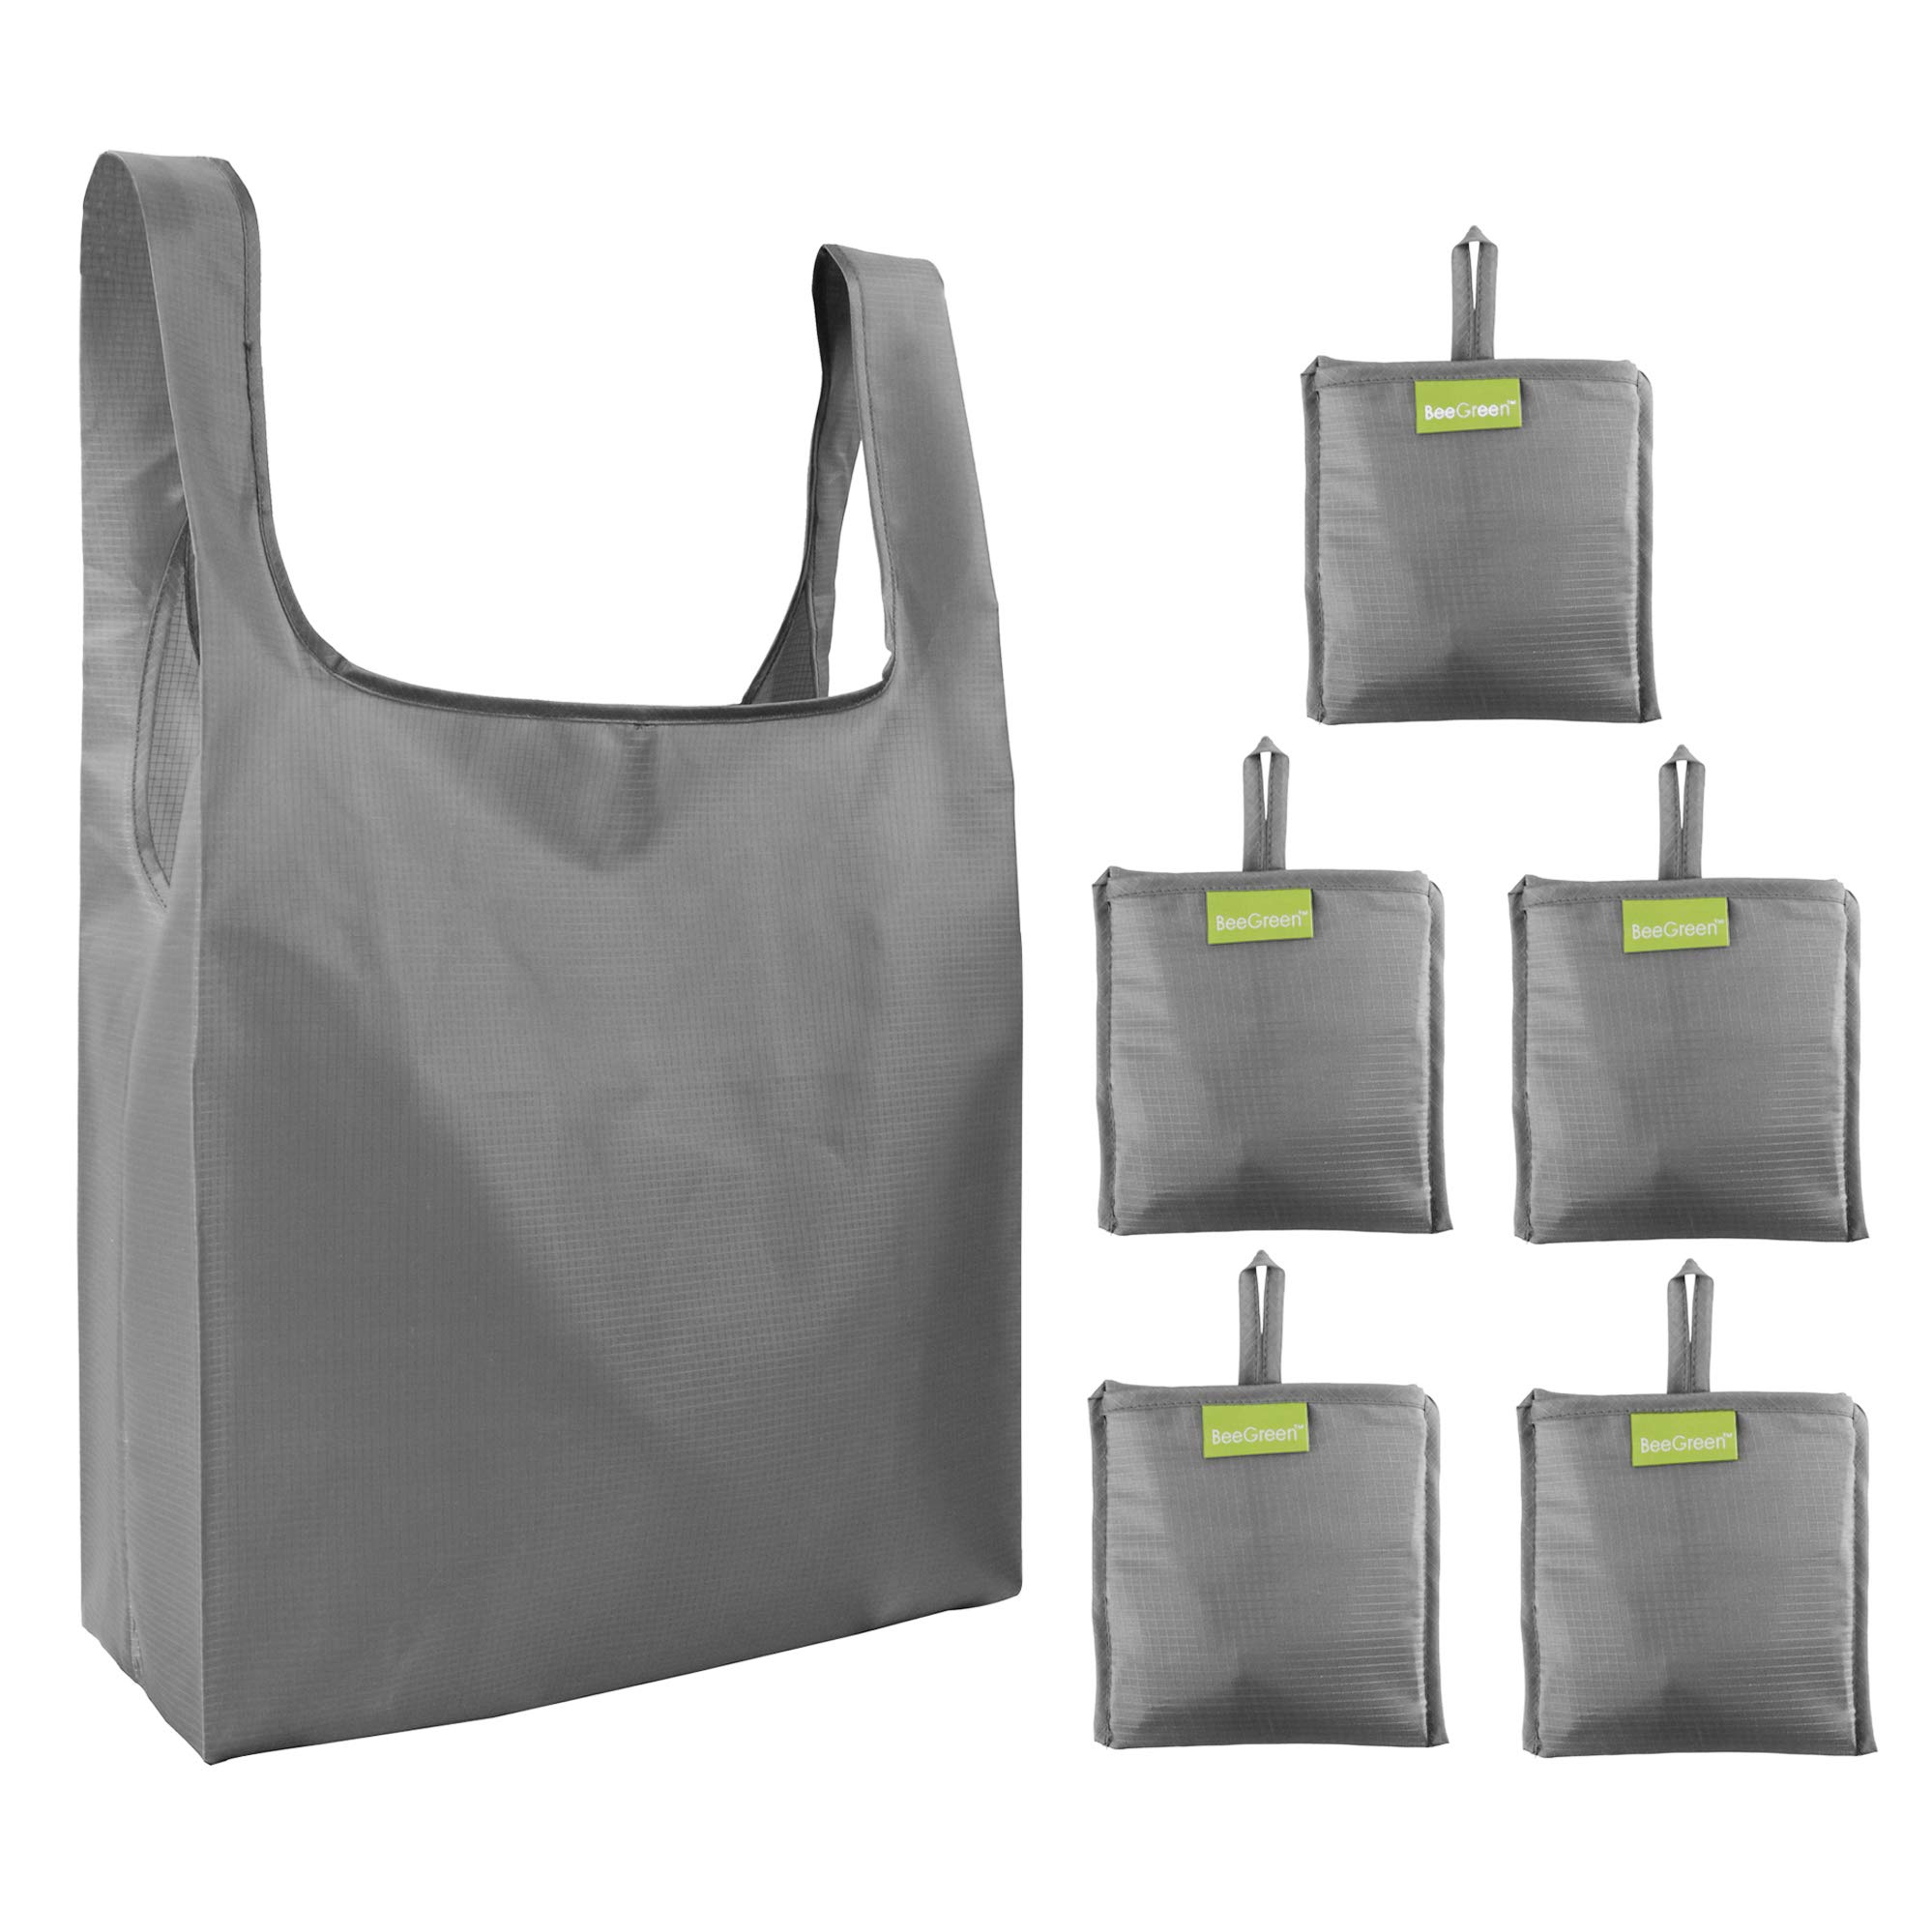 205ec6971593 Folding-Reusable-Grocery-Bags-Shopping-bag with Pocket Folded Groceries  Compact